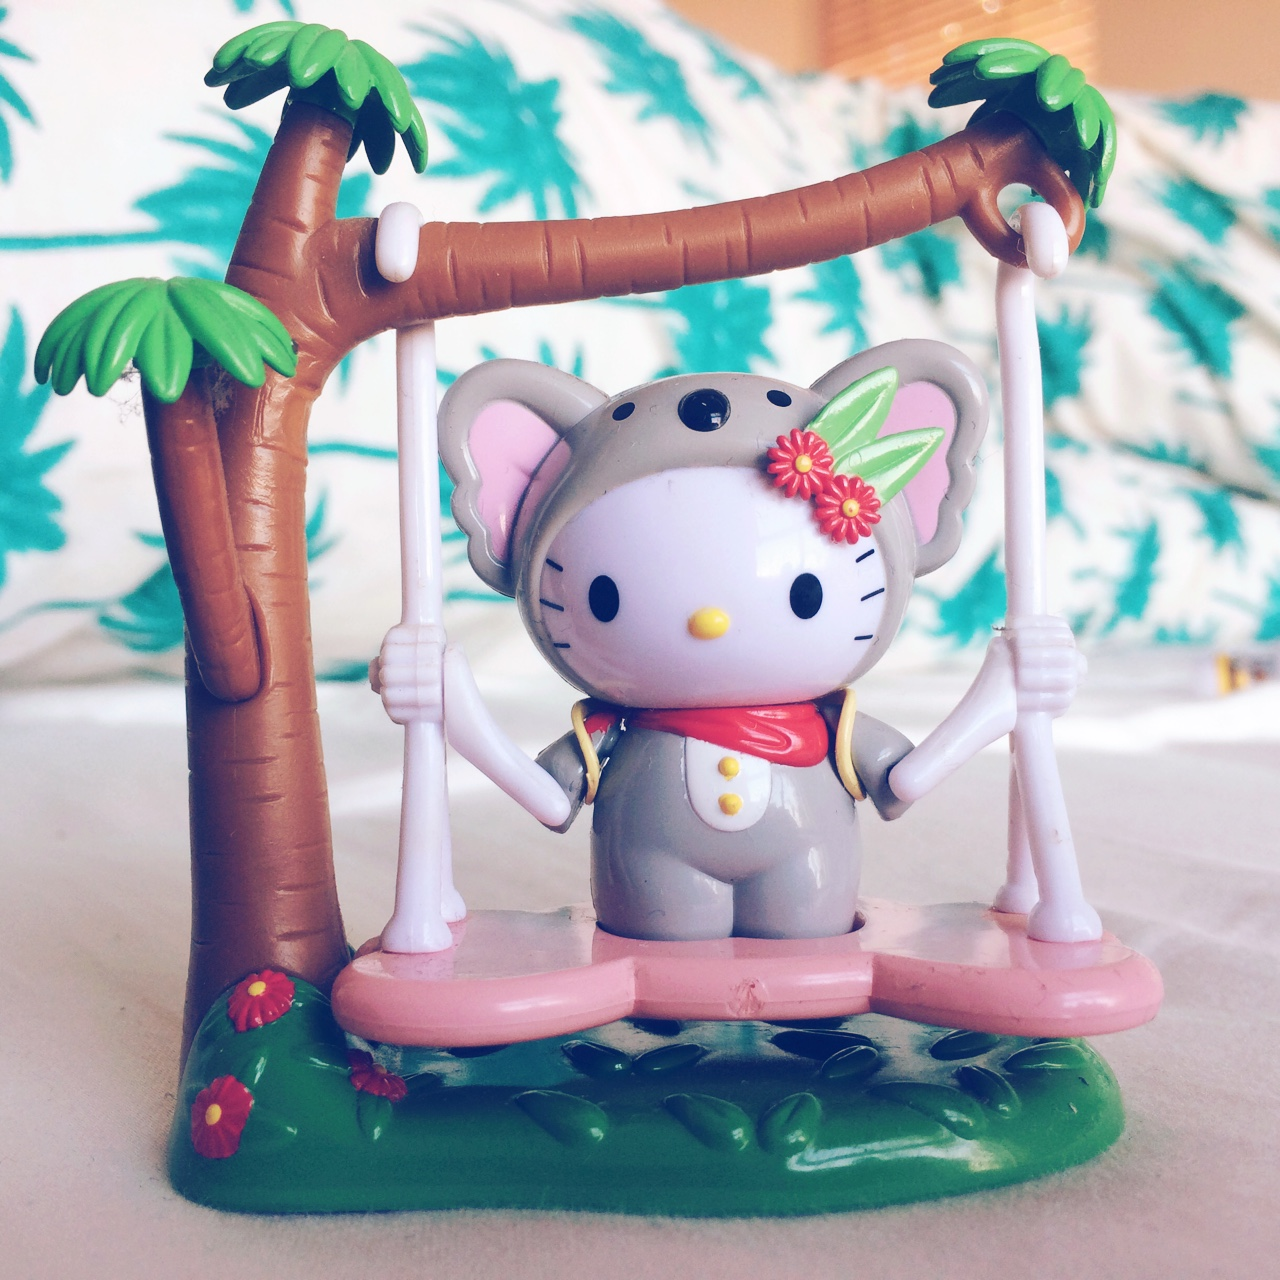 Hello Kitty Koala Set Comes With Moving Swing And A Depop